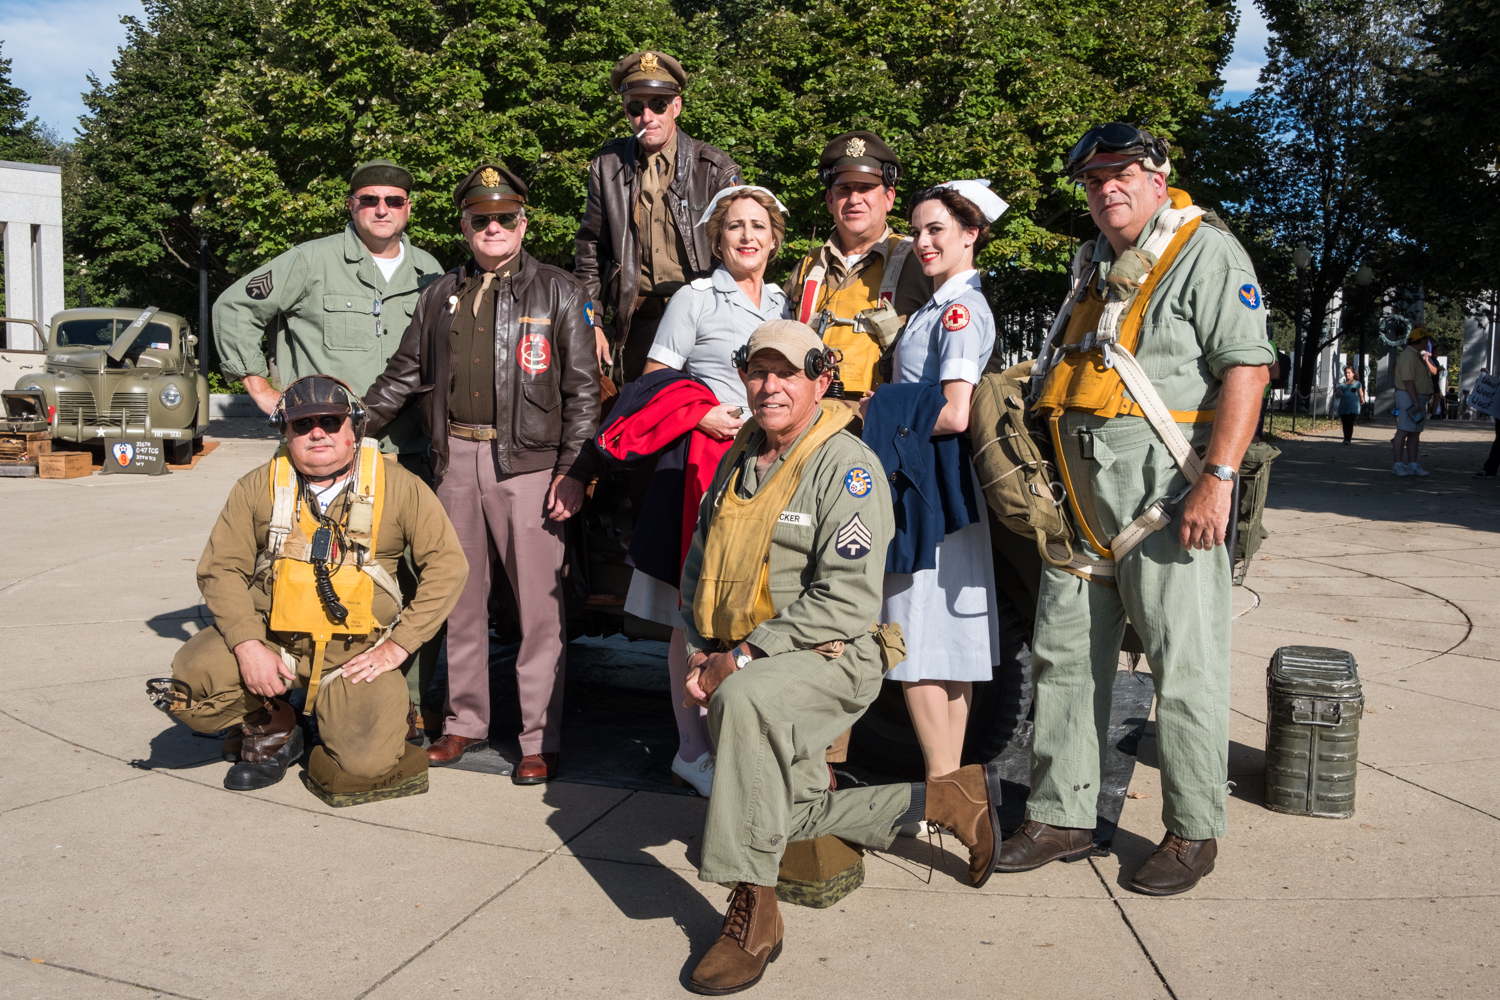 The Allied Airmen's Preservation Society poses for a portrait near the World War II Memorial in Washington, D.C. during an Honor Flight event. Honor Flight is when veterans from around America visit the memorials on The National Mall. The Allied Airmen's Preservation Society is a group of volunteers who gather during events to honor, preserve and remember veterans. Members are: Chris Gabers (standing cigarette), Standing L to R, Dave Nichols, Bill Groff, Laura Shaw, Phil Escobar, Hailey Shaw, Vance Valenzo, Kneeling L to R, Will Snyder, Joe Becker.